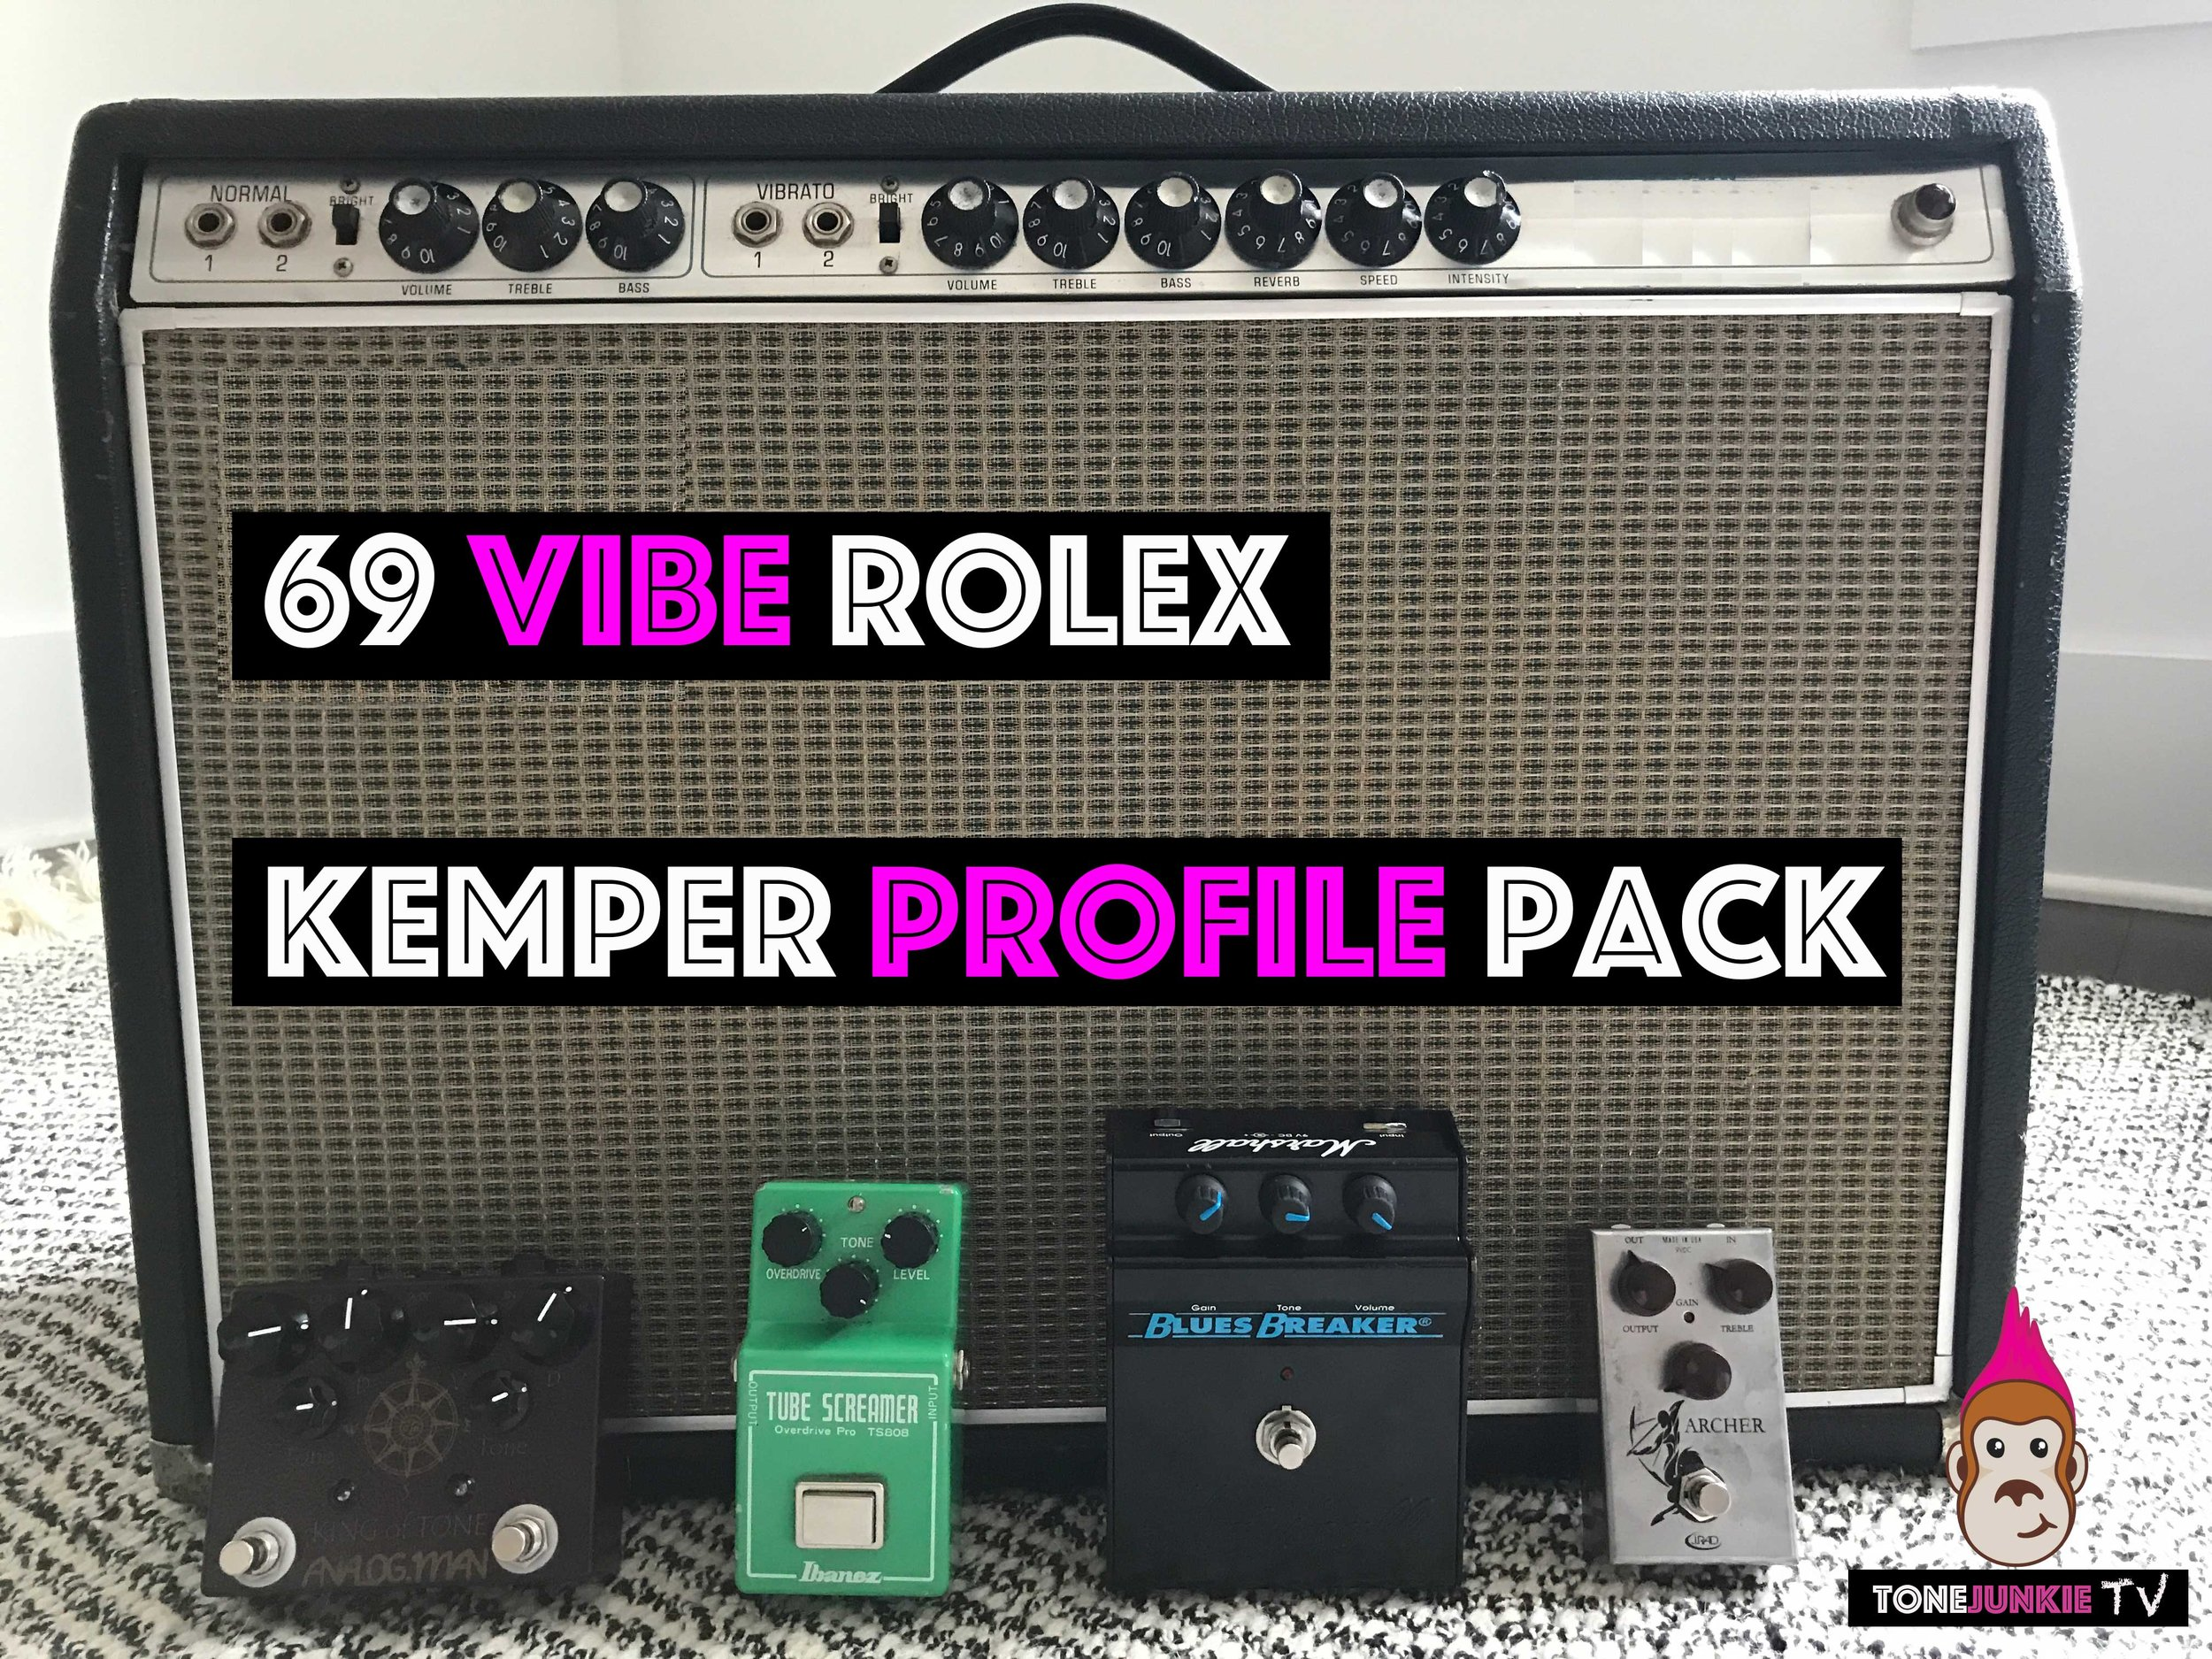 69 Vibe Rolex - NOW ON SALE FOR $10!!!The 69 Vibe Rolex Pack from Tone Junkie seeks to capture the sound of an all original 69 F***** V**rolux amp. With all original tunes, pots and speakers this 2x10 vintage amplifier has that classic american clean sound but with a deep yet tight bass response and smoother highs than many of its 1x12 and 2x12 cousins. Producers now how wonderfully these record and how well they pair in a mix with similar amps using 12 inch speakers.